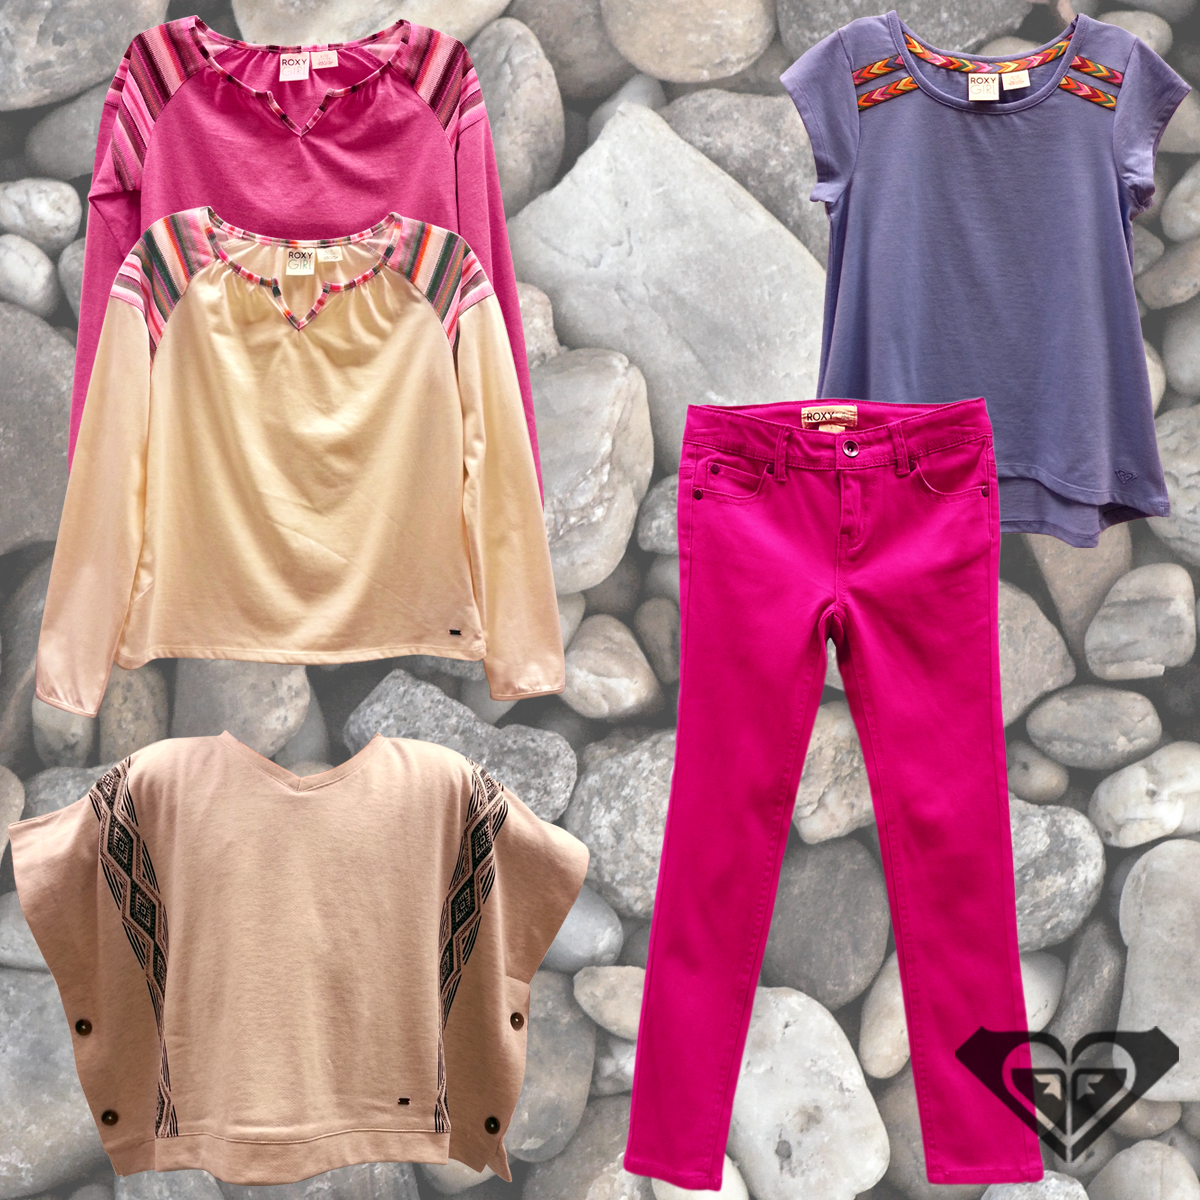 New Tops and Jeans from Roxy Girl